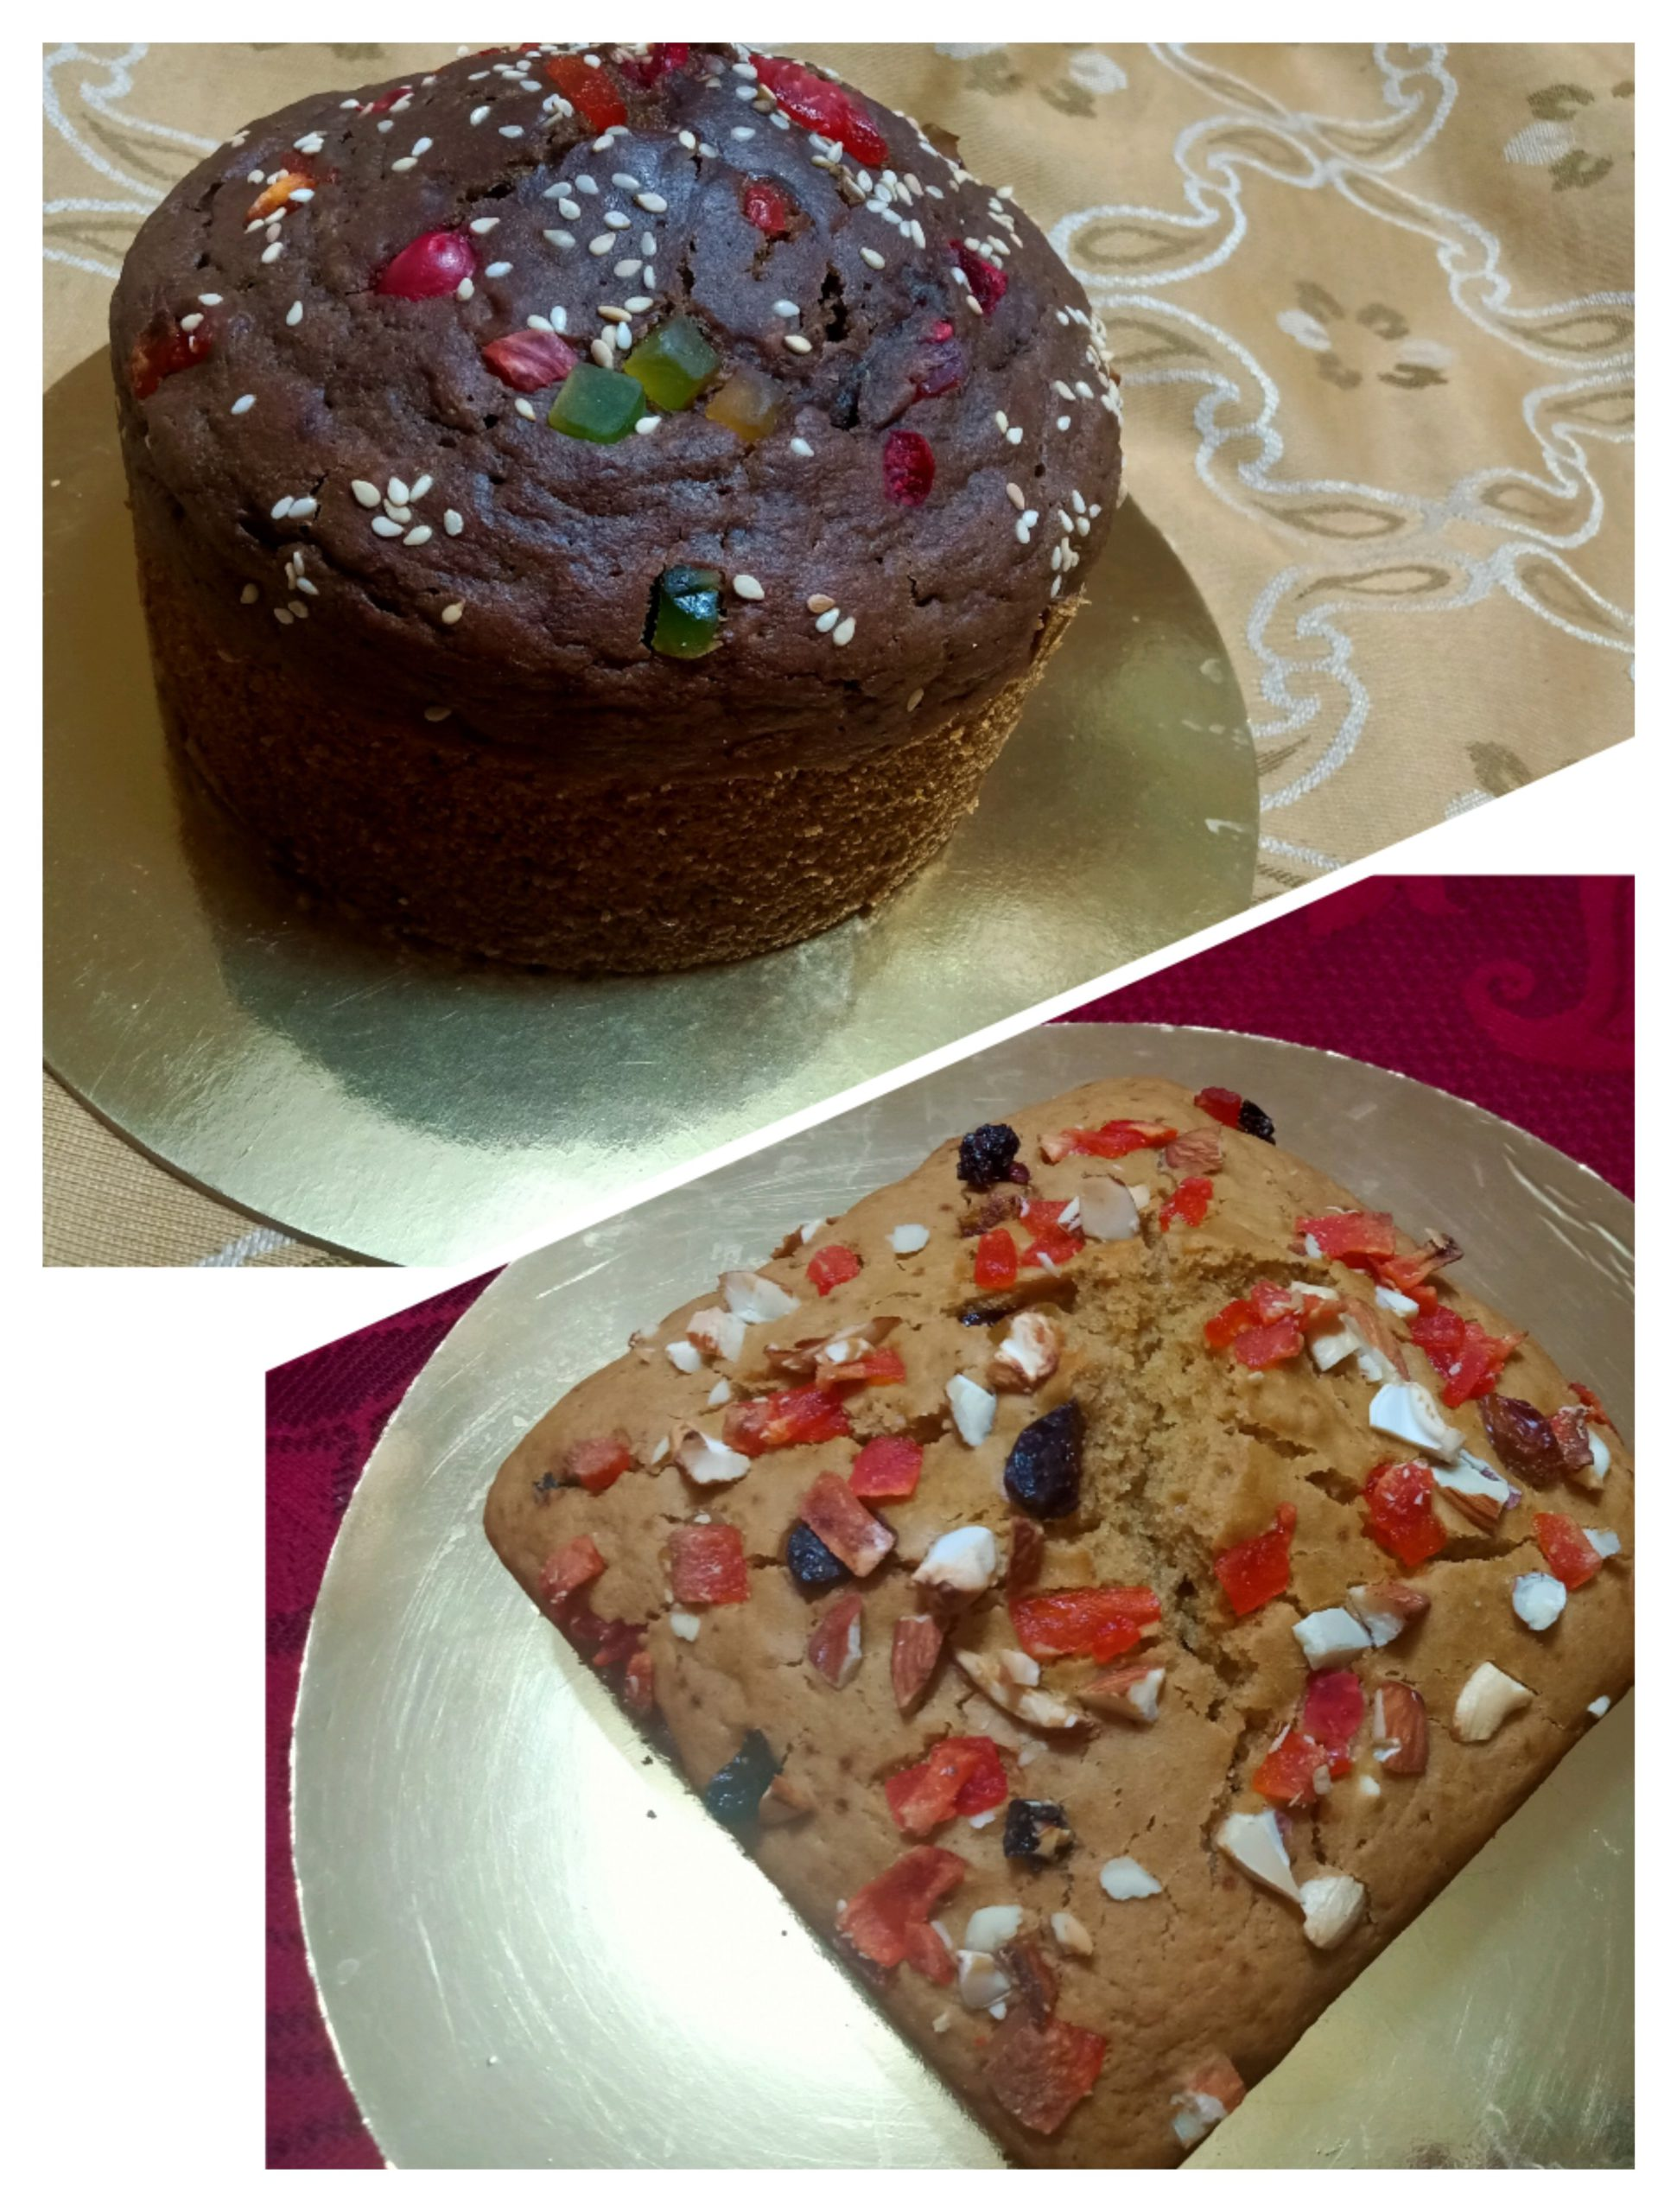 Whole Wheat Cake Designs, Images, Price Near Me